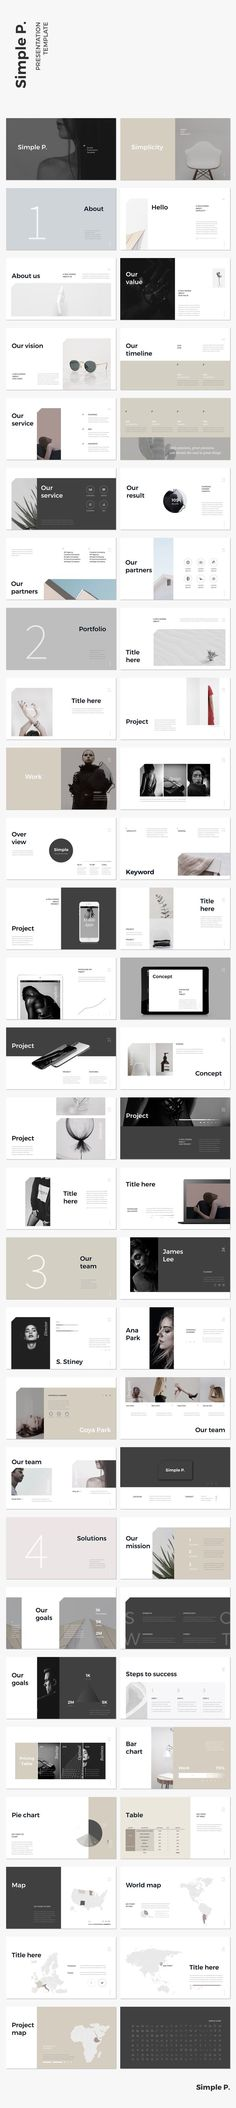 Awesome Simple & Minimal Layout Presentation Template #ppt #powerpoint #template #simple